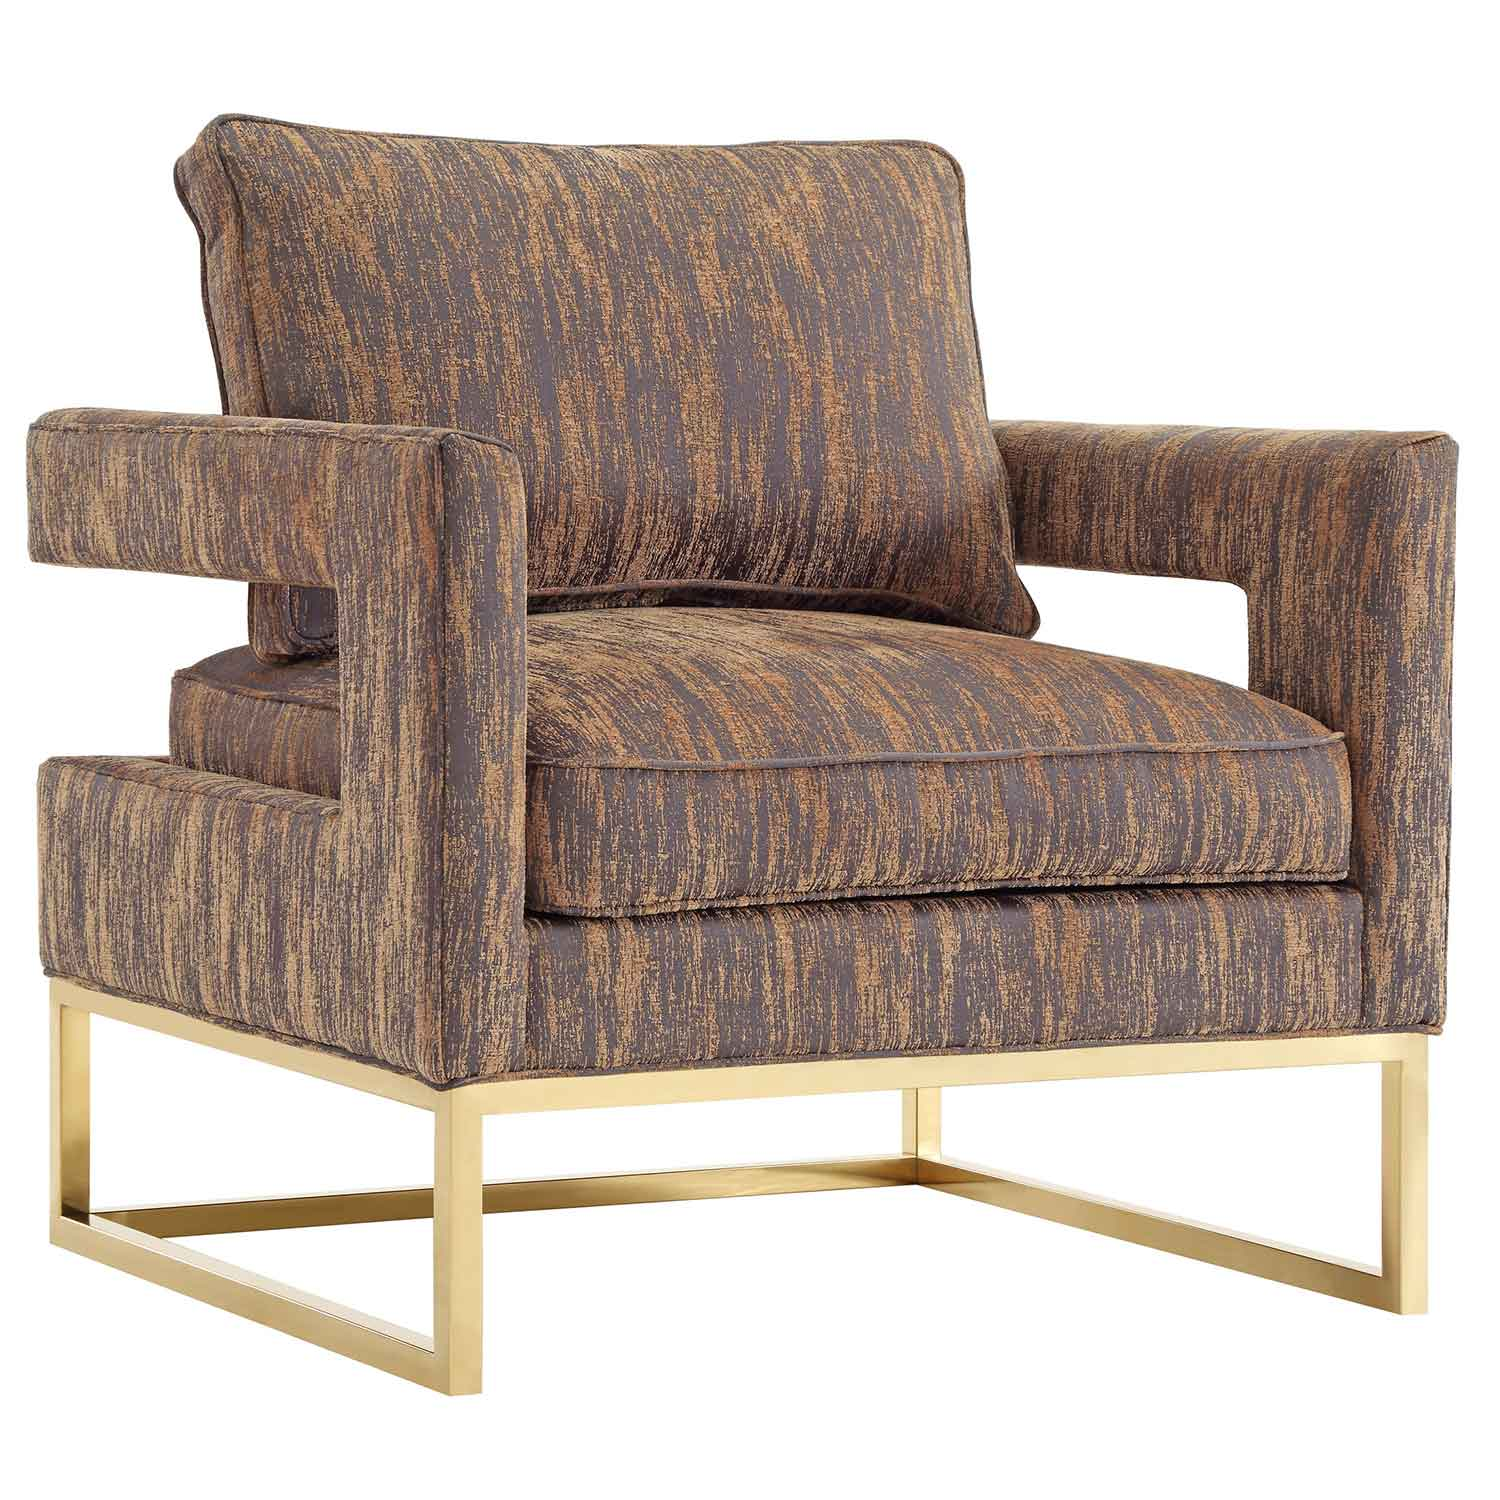 TOV Furniture Avery Chair - Gold